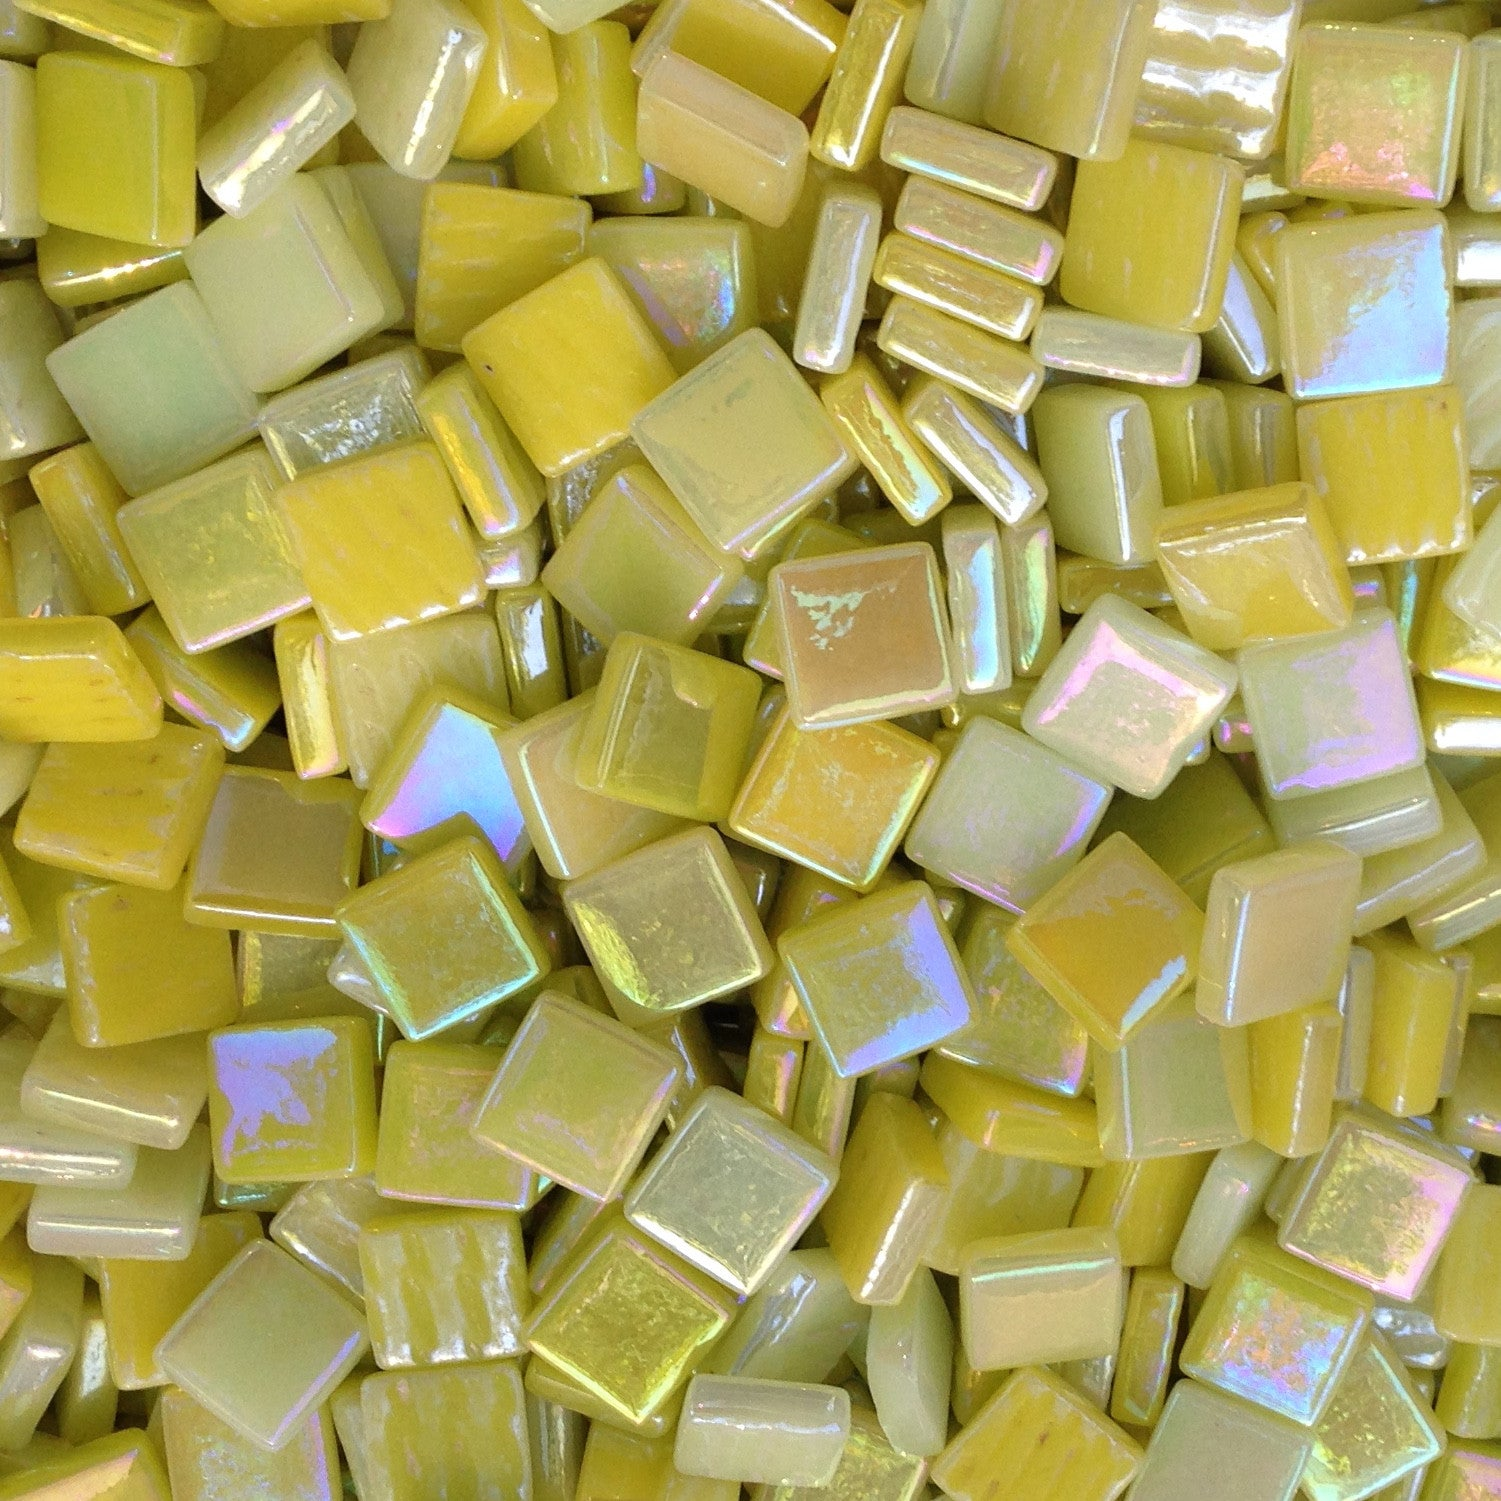 12mm - Yellows - Iridescent, 12mm Assortments - Kismet Mosaic